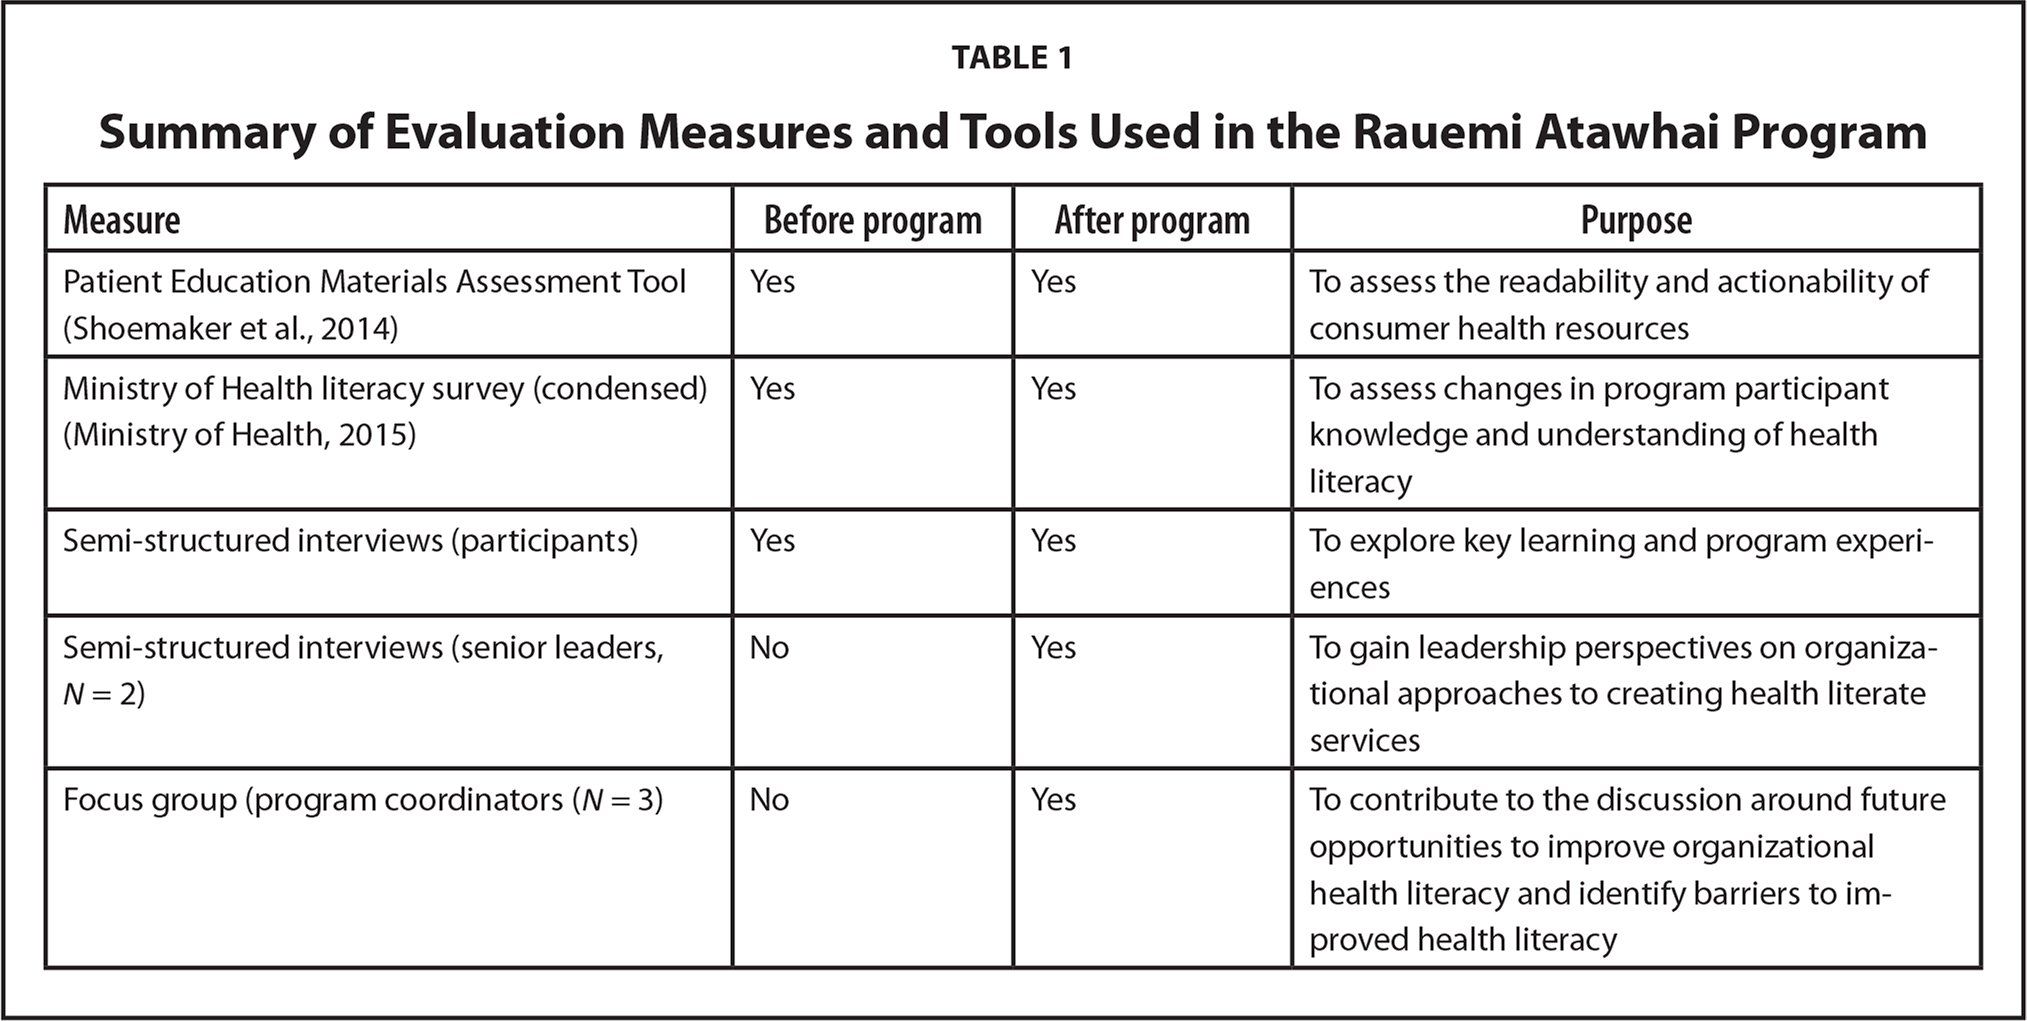 Summary of Evaluation Measures and Tools Used in the Rauemi Atawhai Program